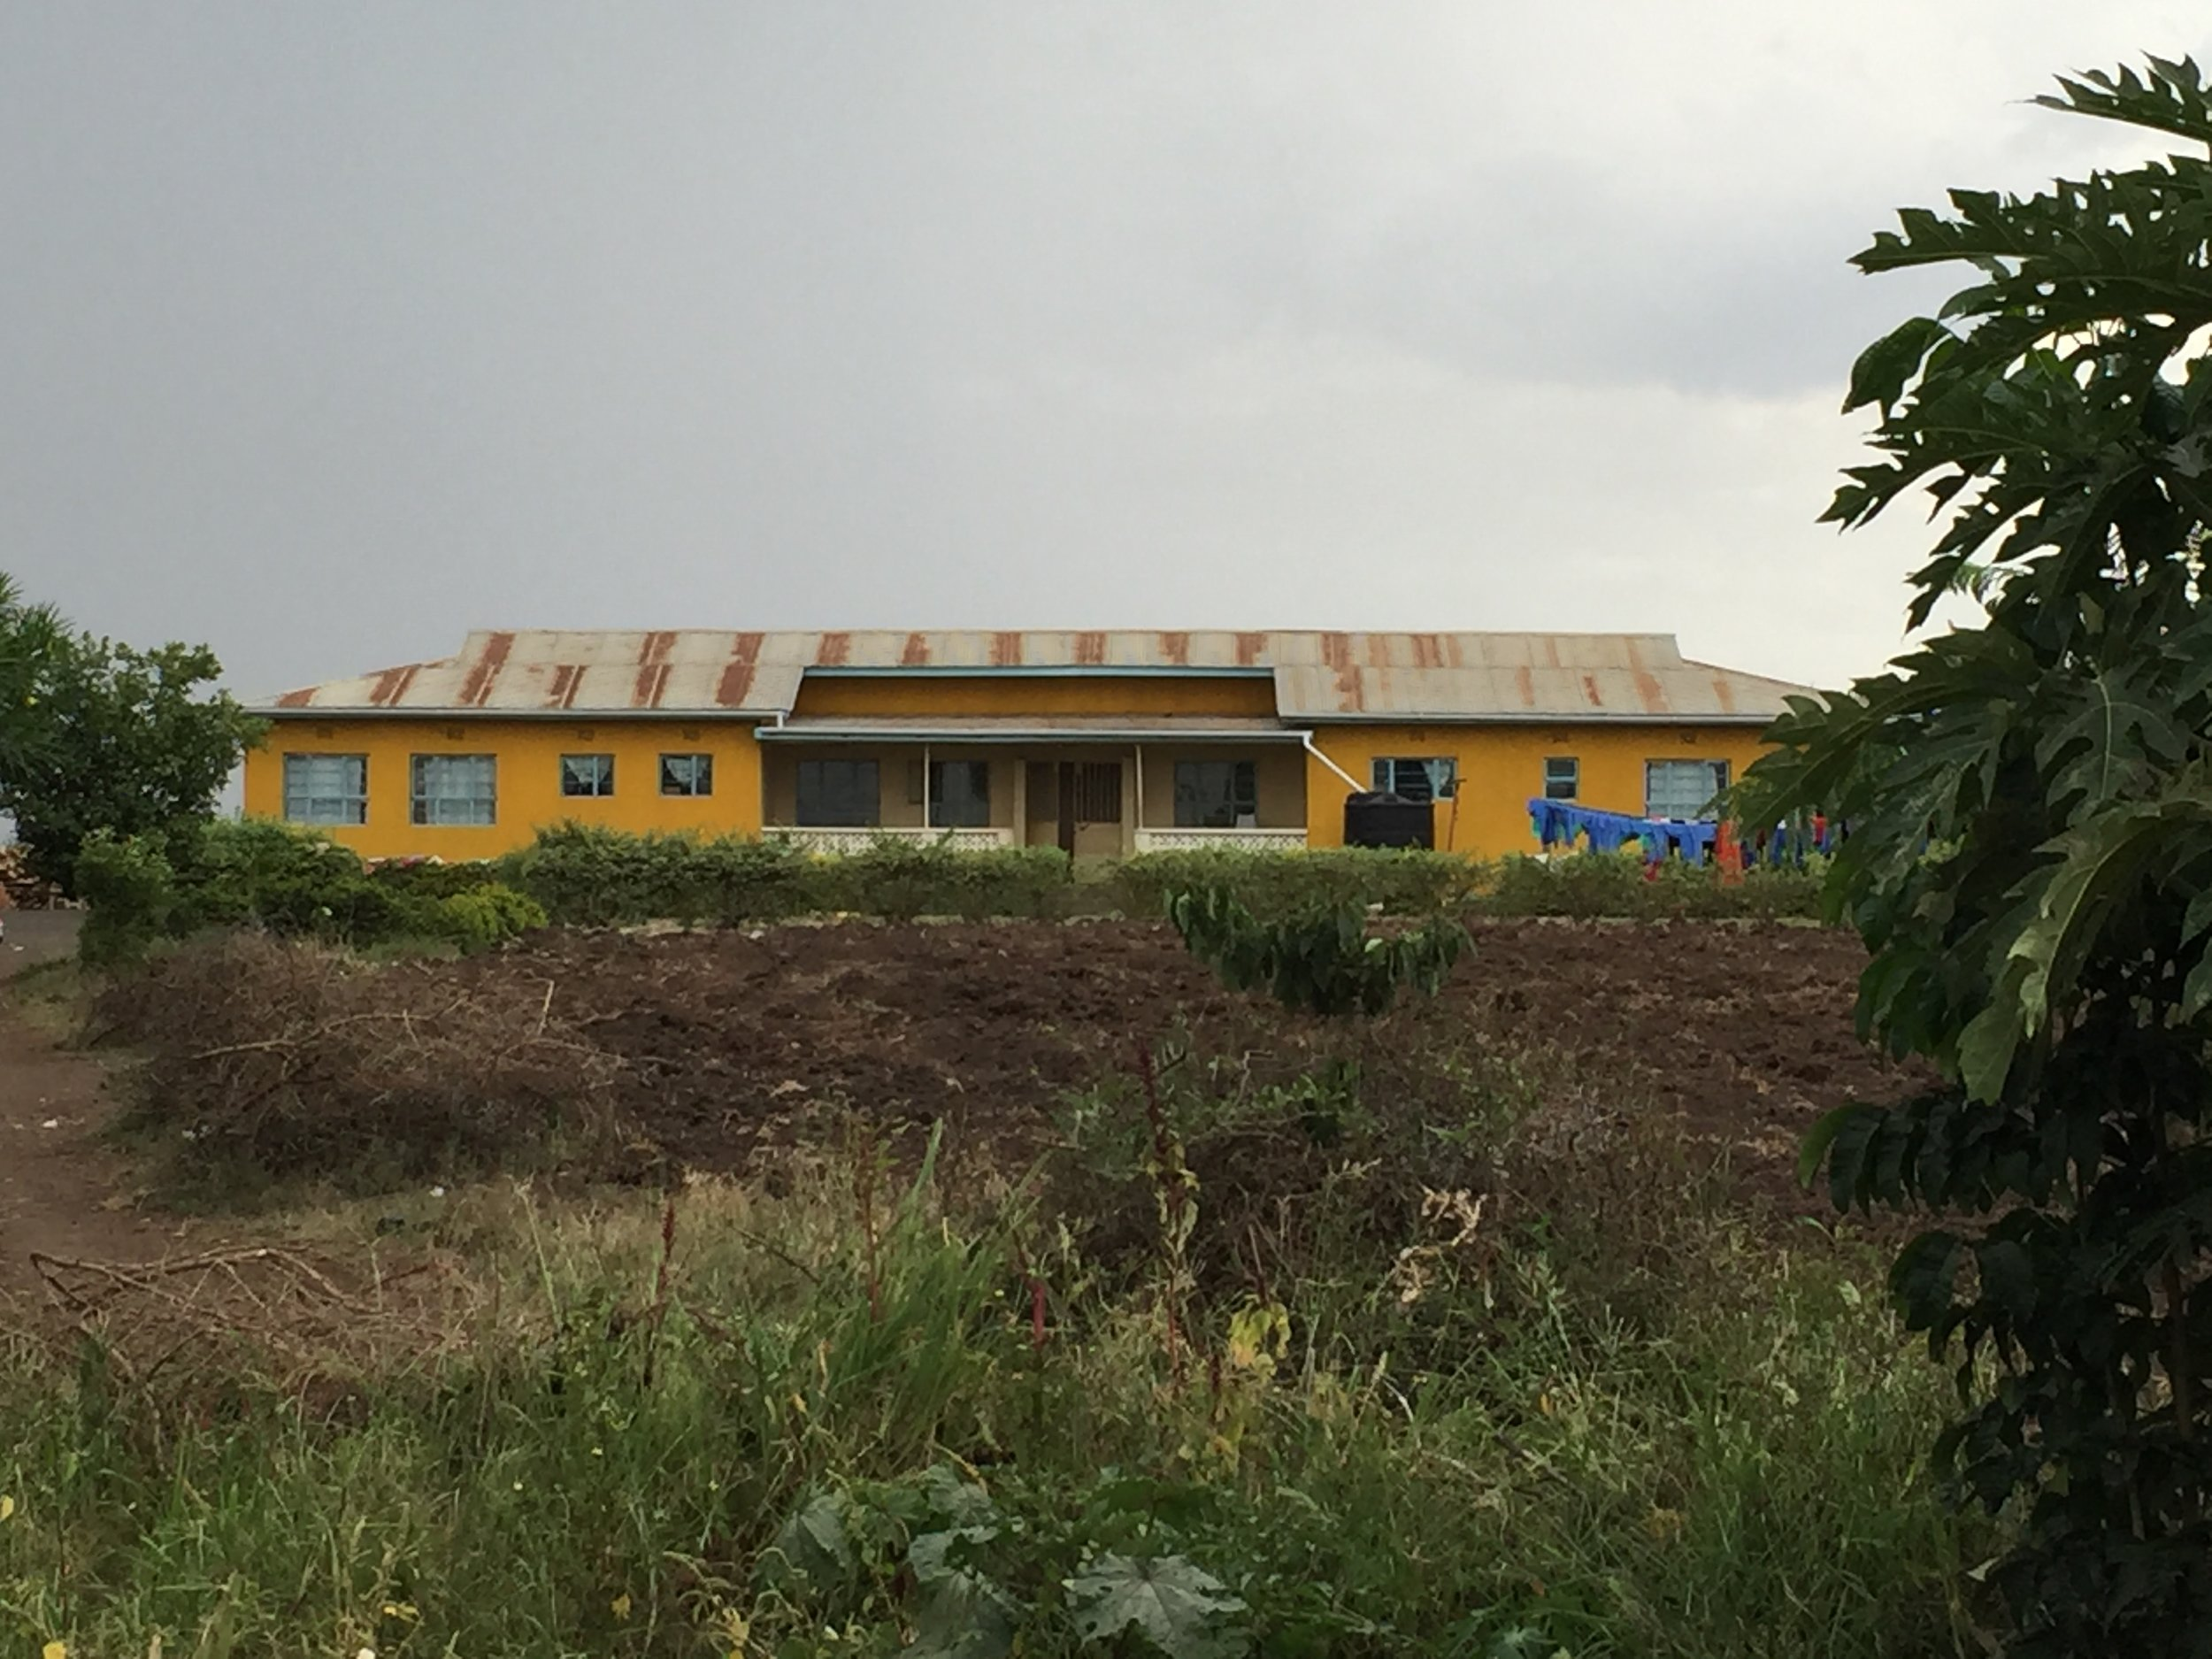 Both the girls dorm (above) and the boys dorm are in desperate need of new roofs and renovations to stop the leakage and rot.